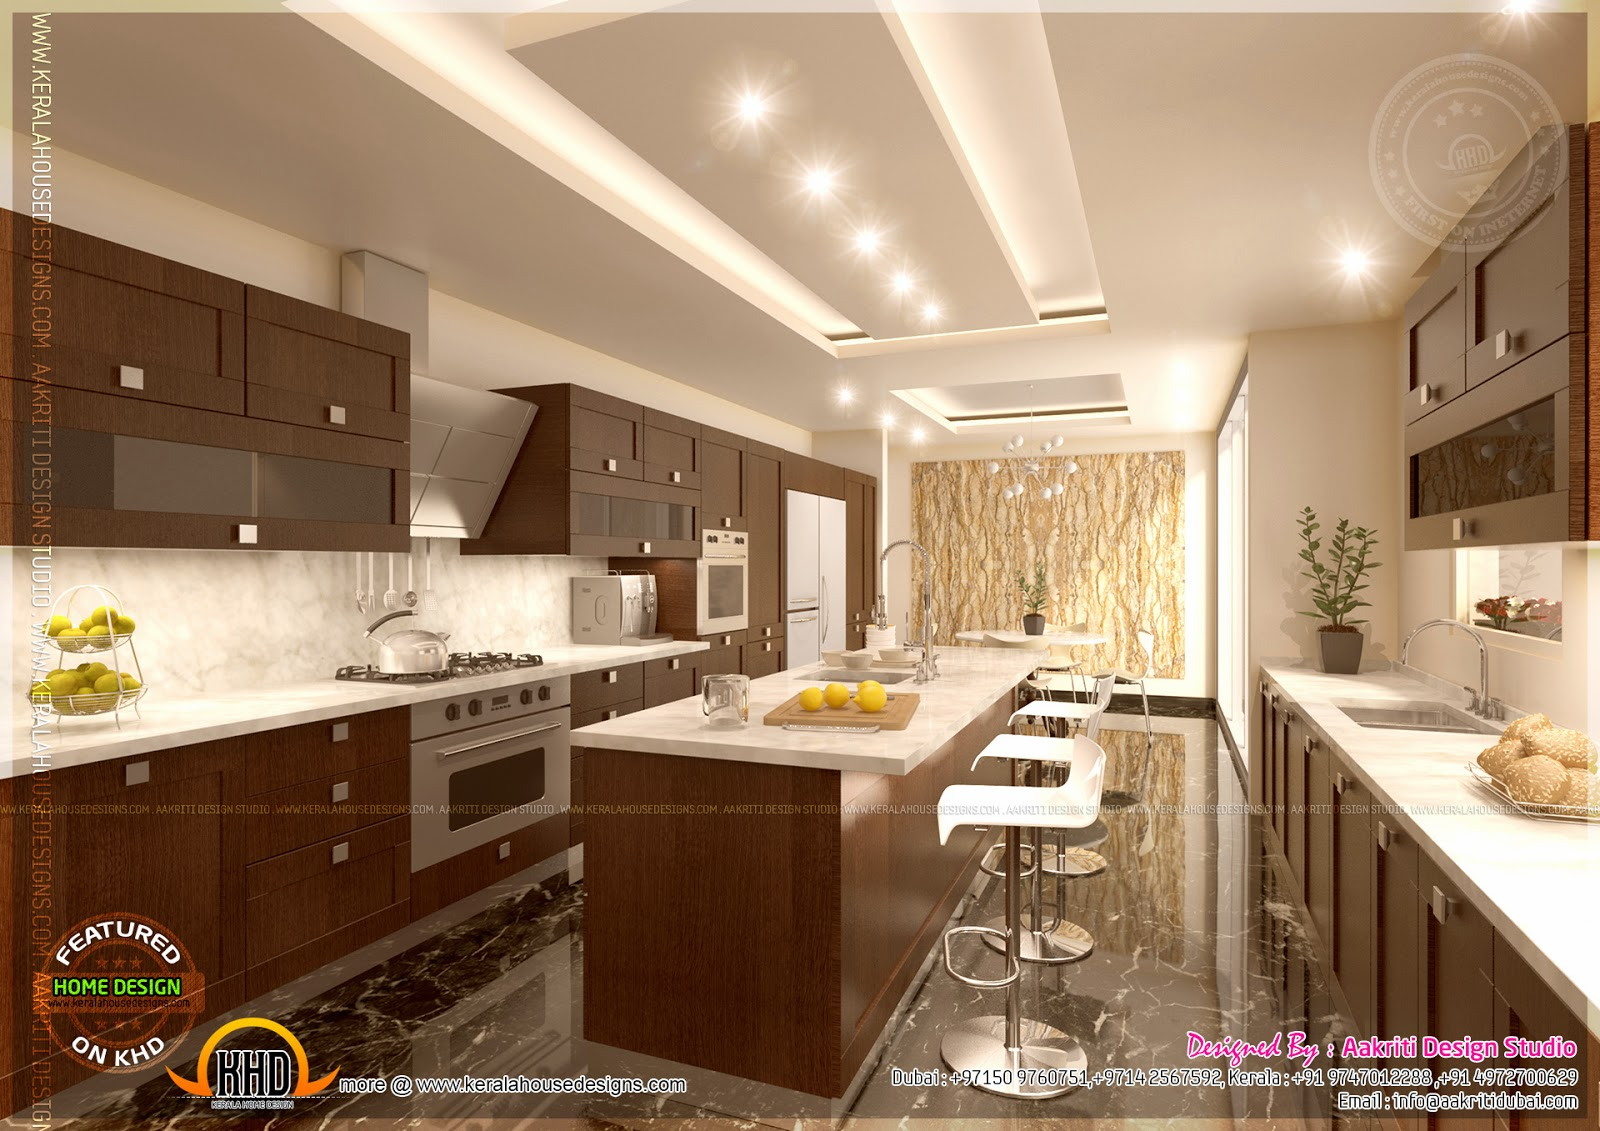 Kitchen designs by aakriti design studio kerala home for Kitchen ideas pictures designs